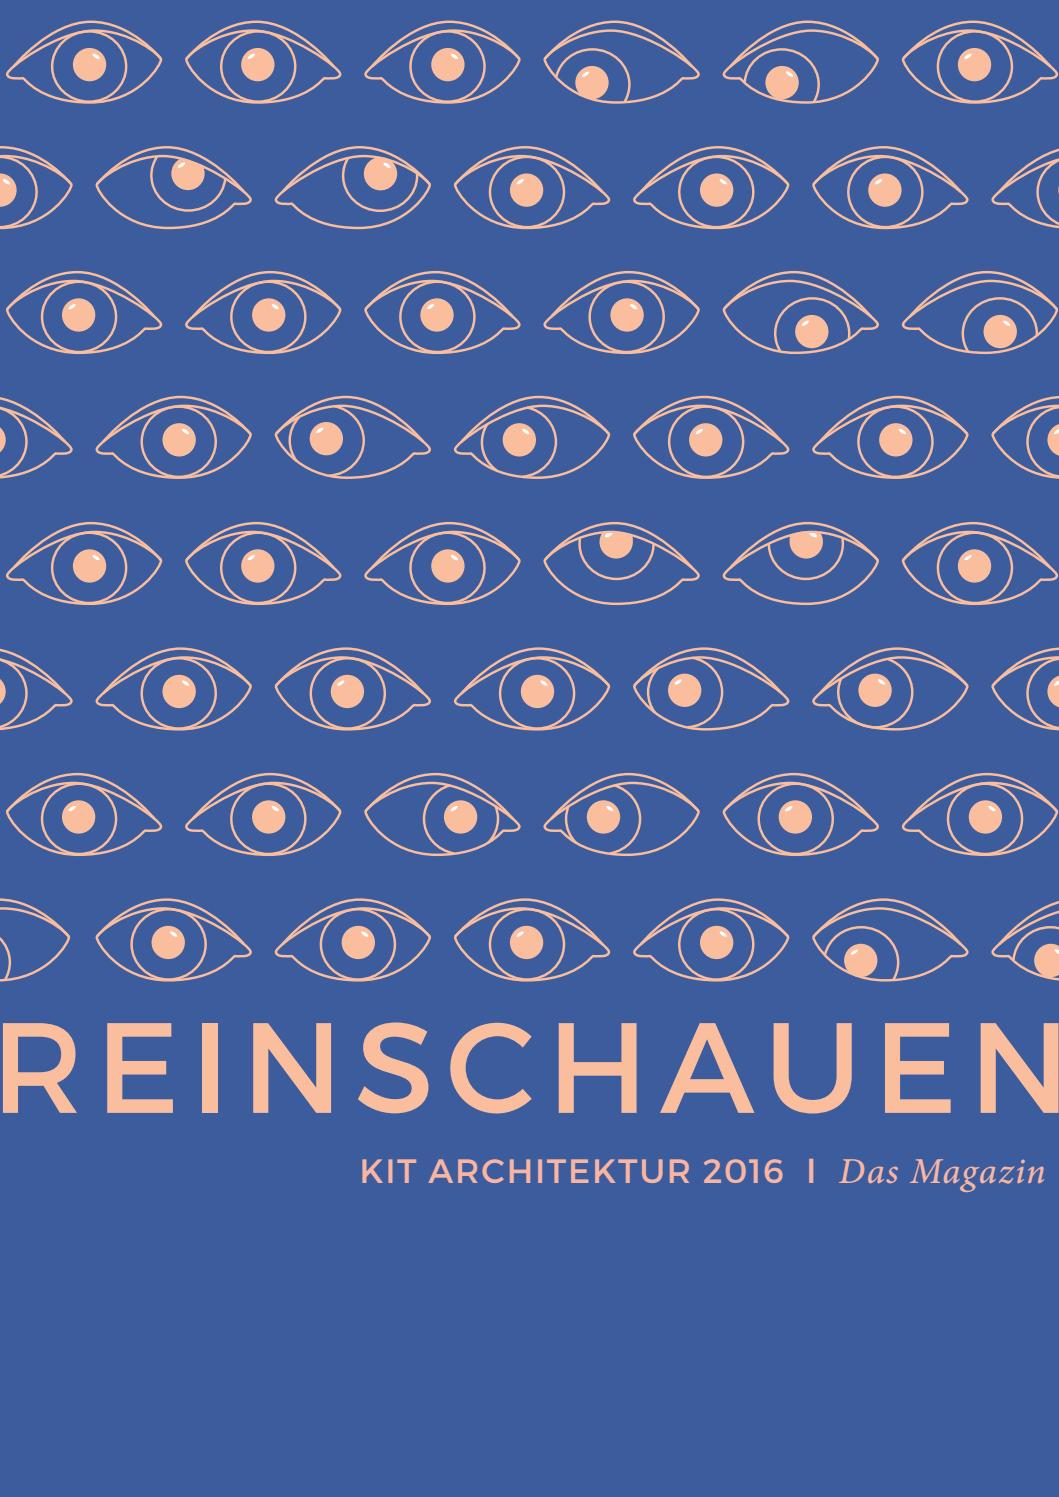 Uni Ranking Architektur Reinschauen Kit Architektur 2016 Das Magazin By Arch Kit Edu